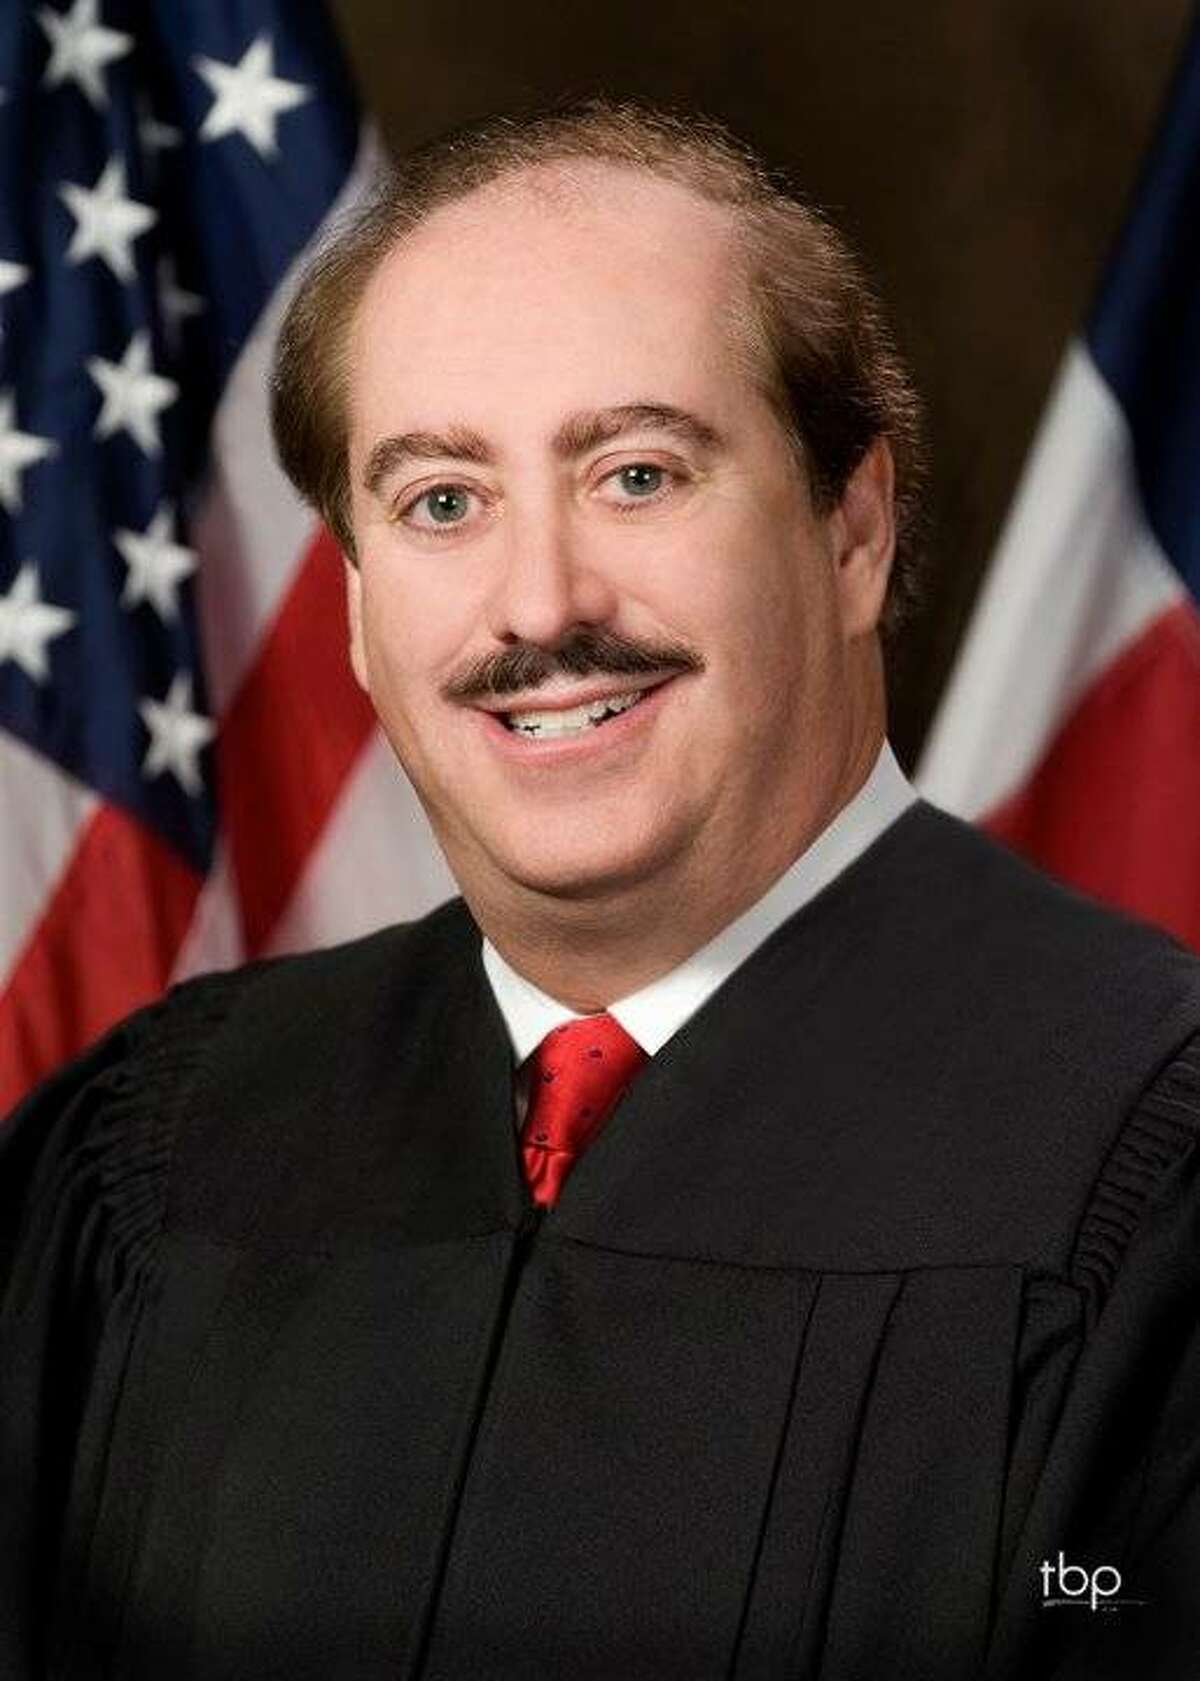 Judge Larry Weiman is seeking reelection to the 80th Civil District Court.